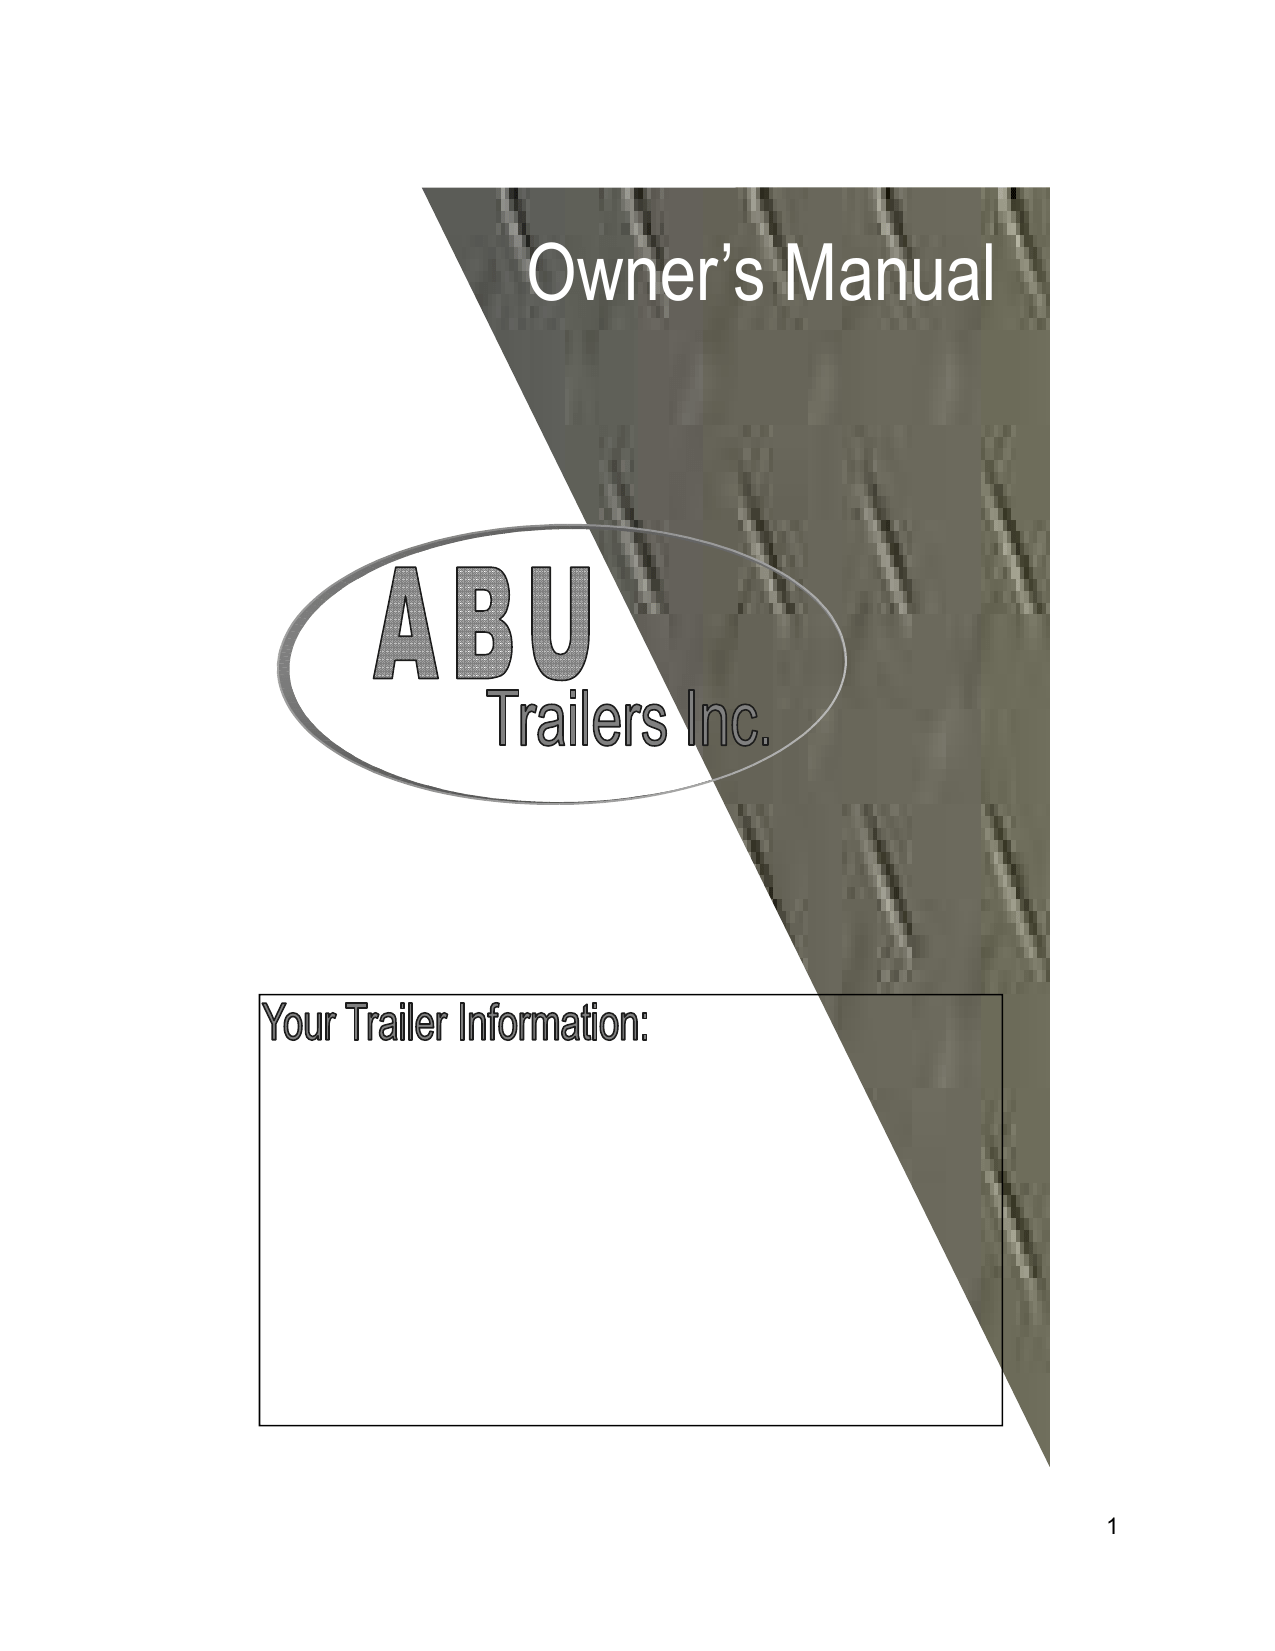 hight resolution of abu trailers inc owner s manual